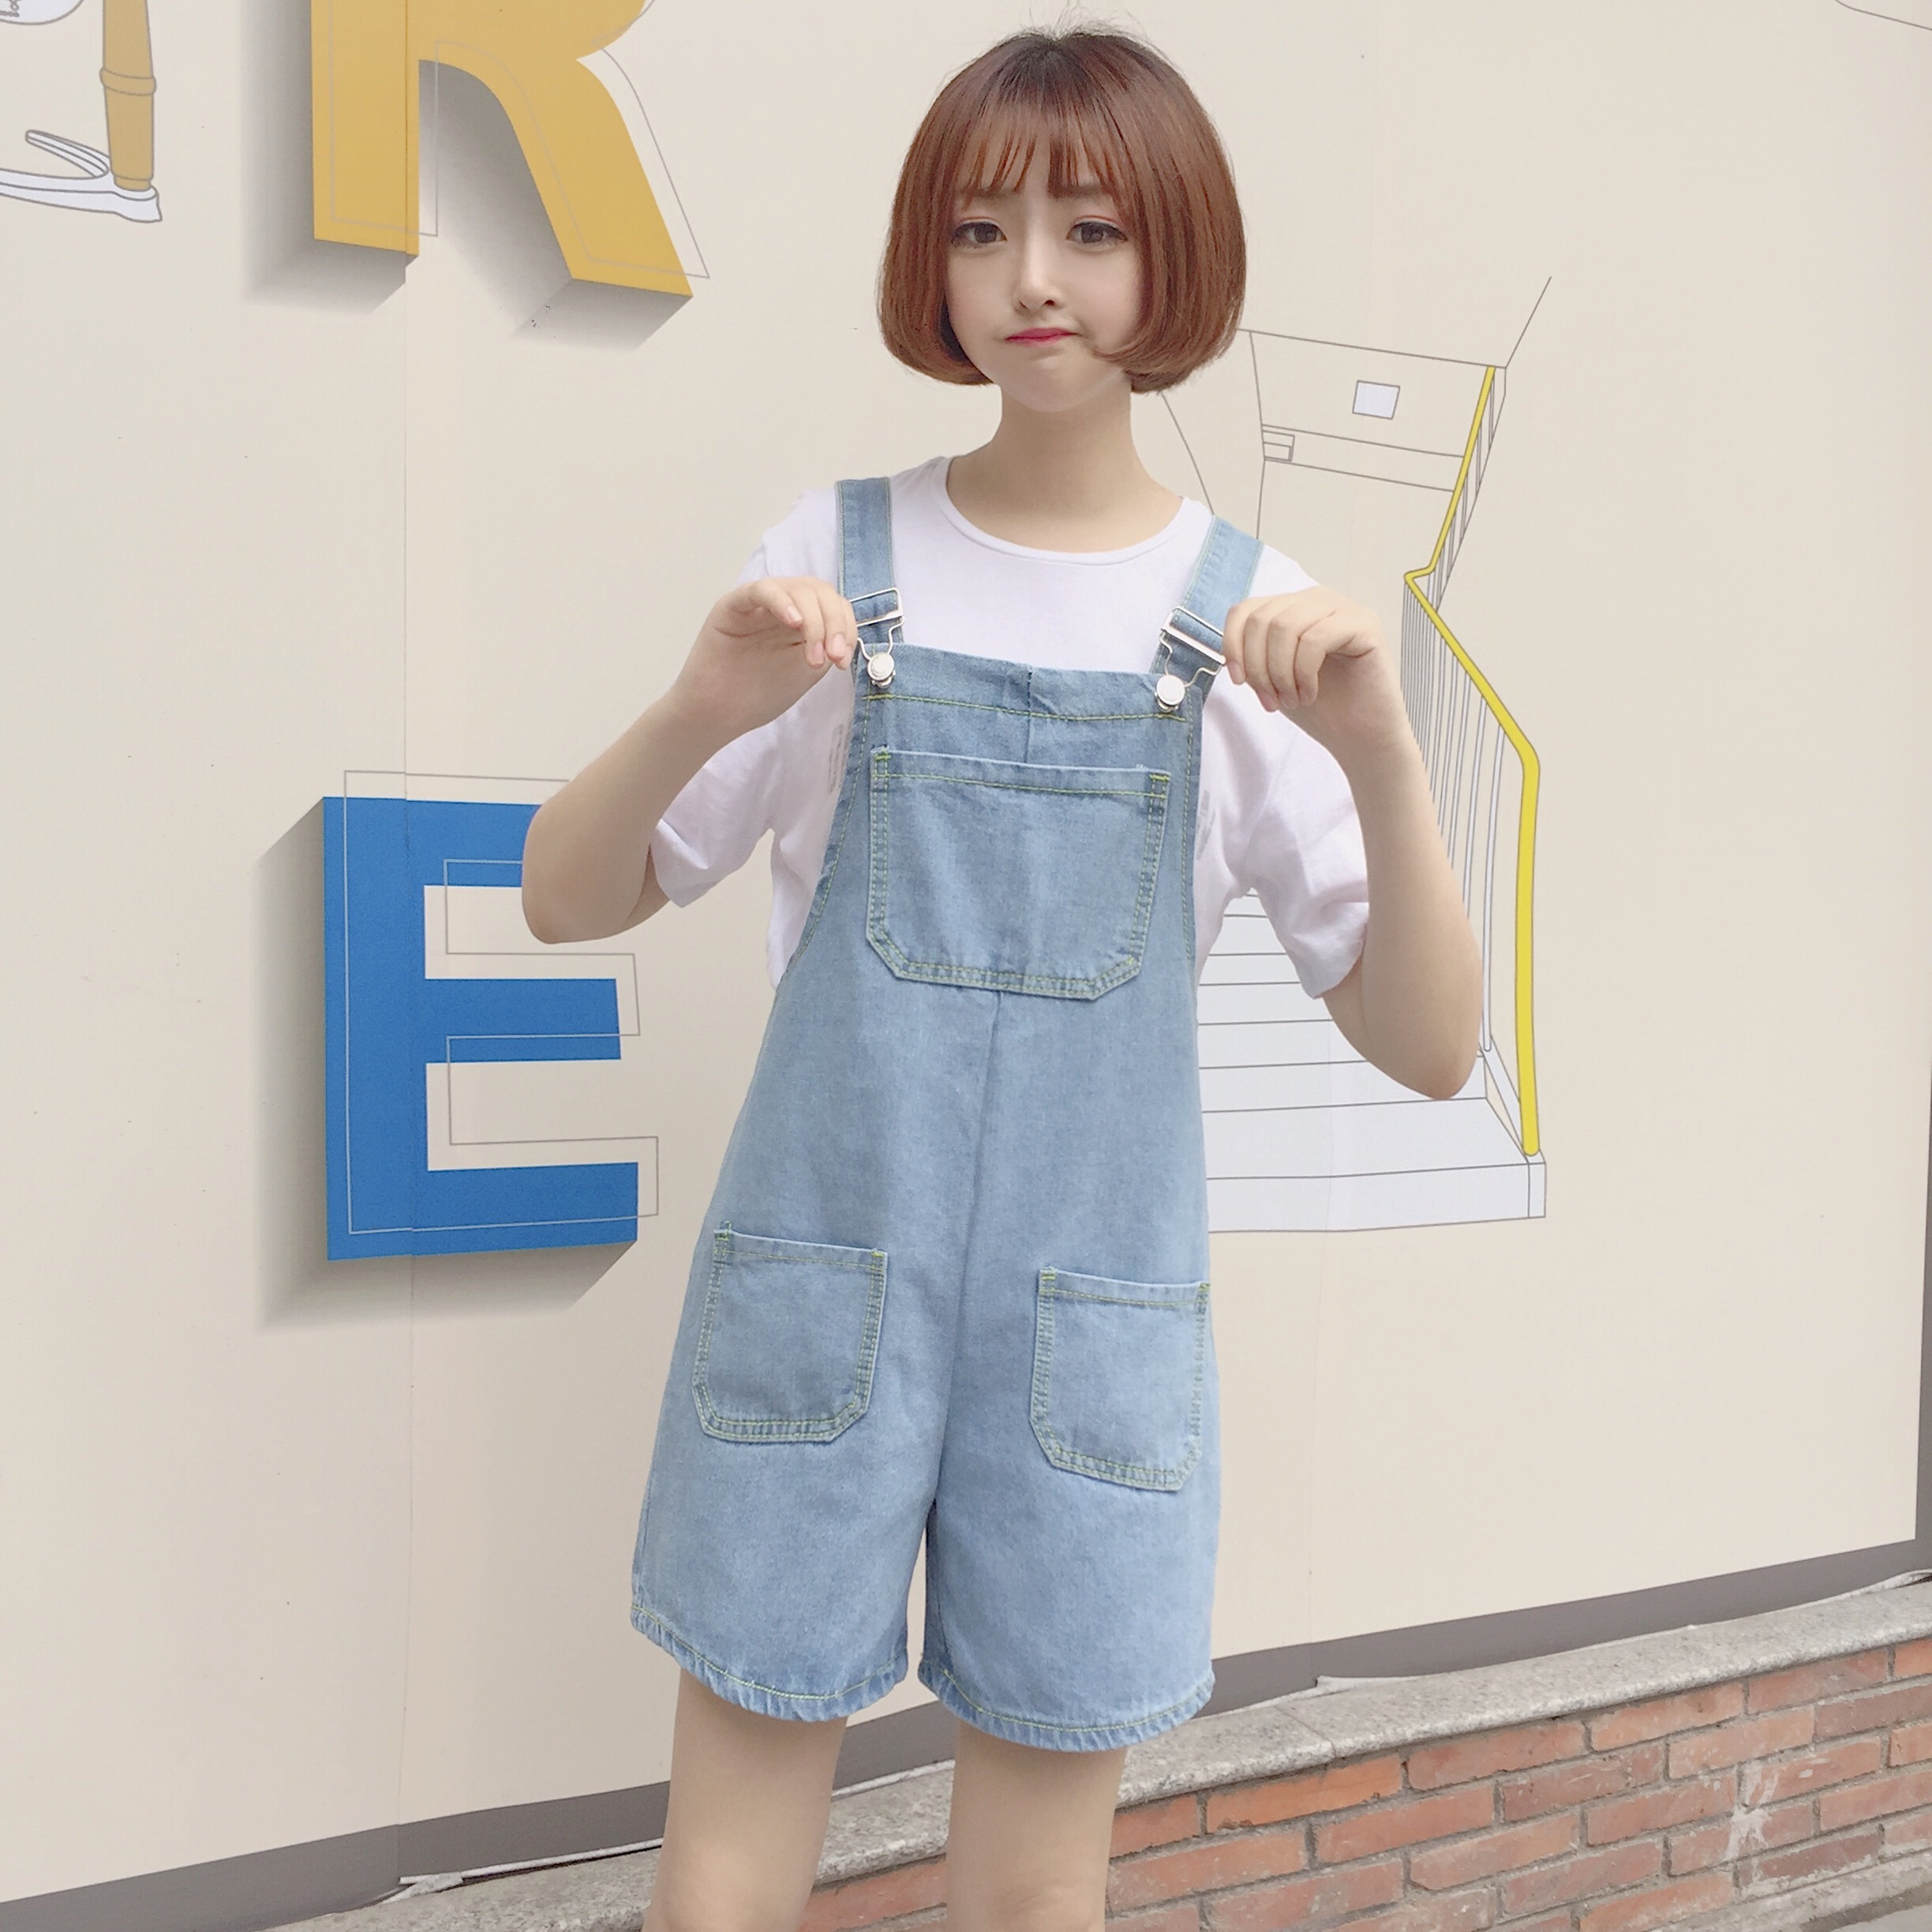 BARGAIN HUNTERS Store 2017 Denim Overalls Women Playsuit New Womens Brief Loose Females Casual Romper Female Summer Chic Korean Preppy Style Playsuits